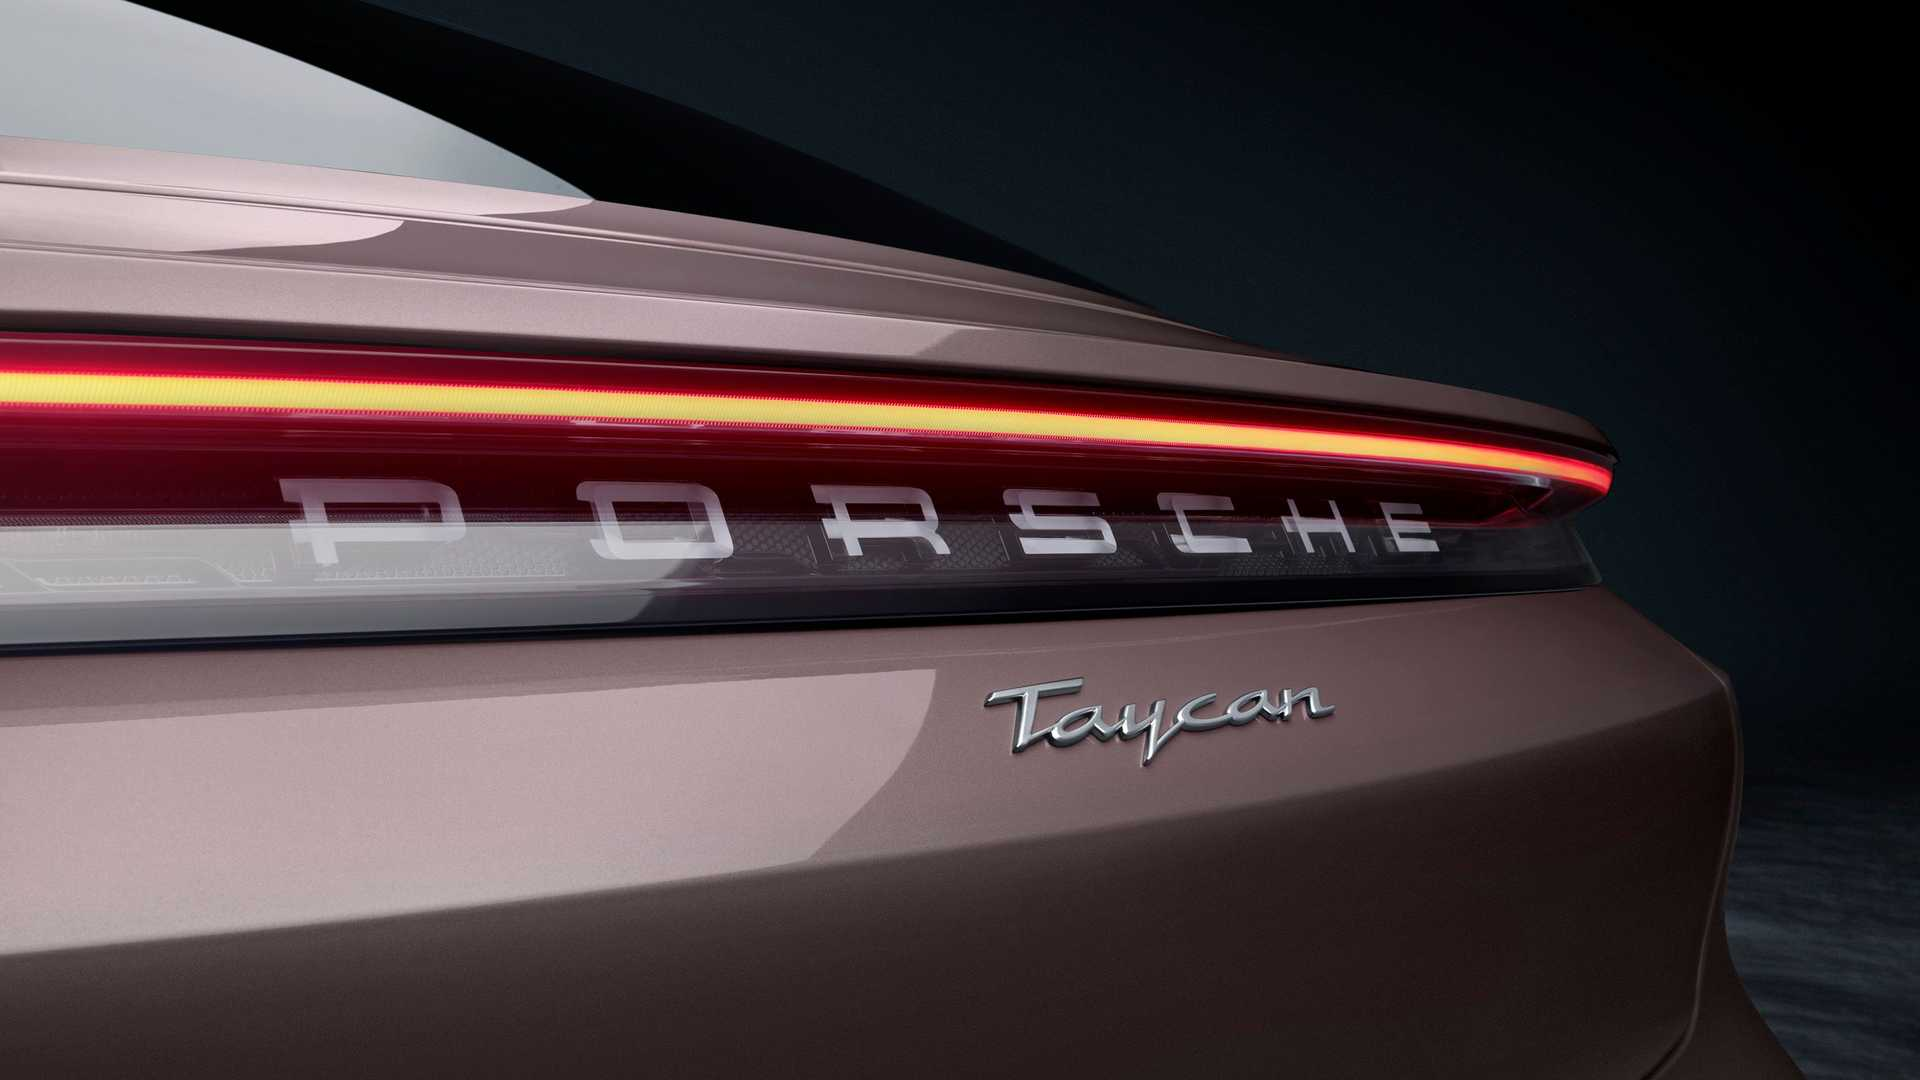 2021 Porsche Taycan Rear Badge